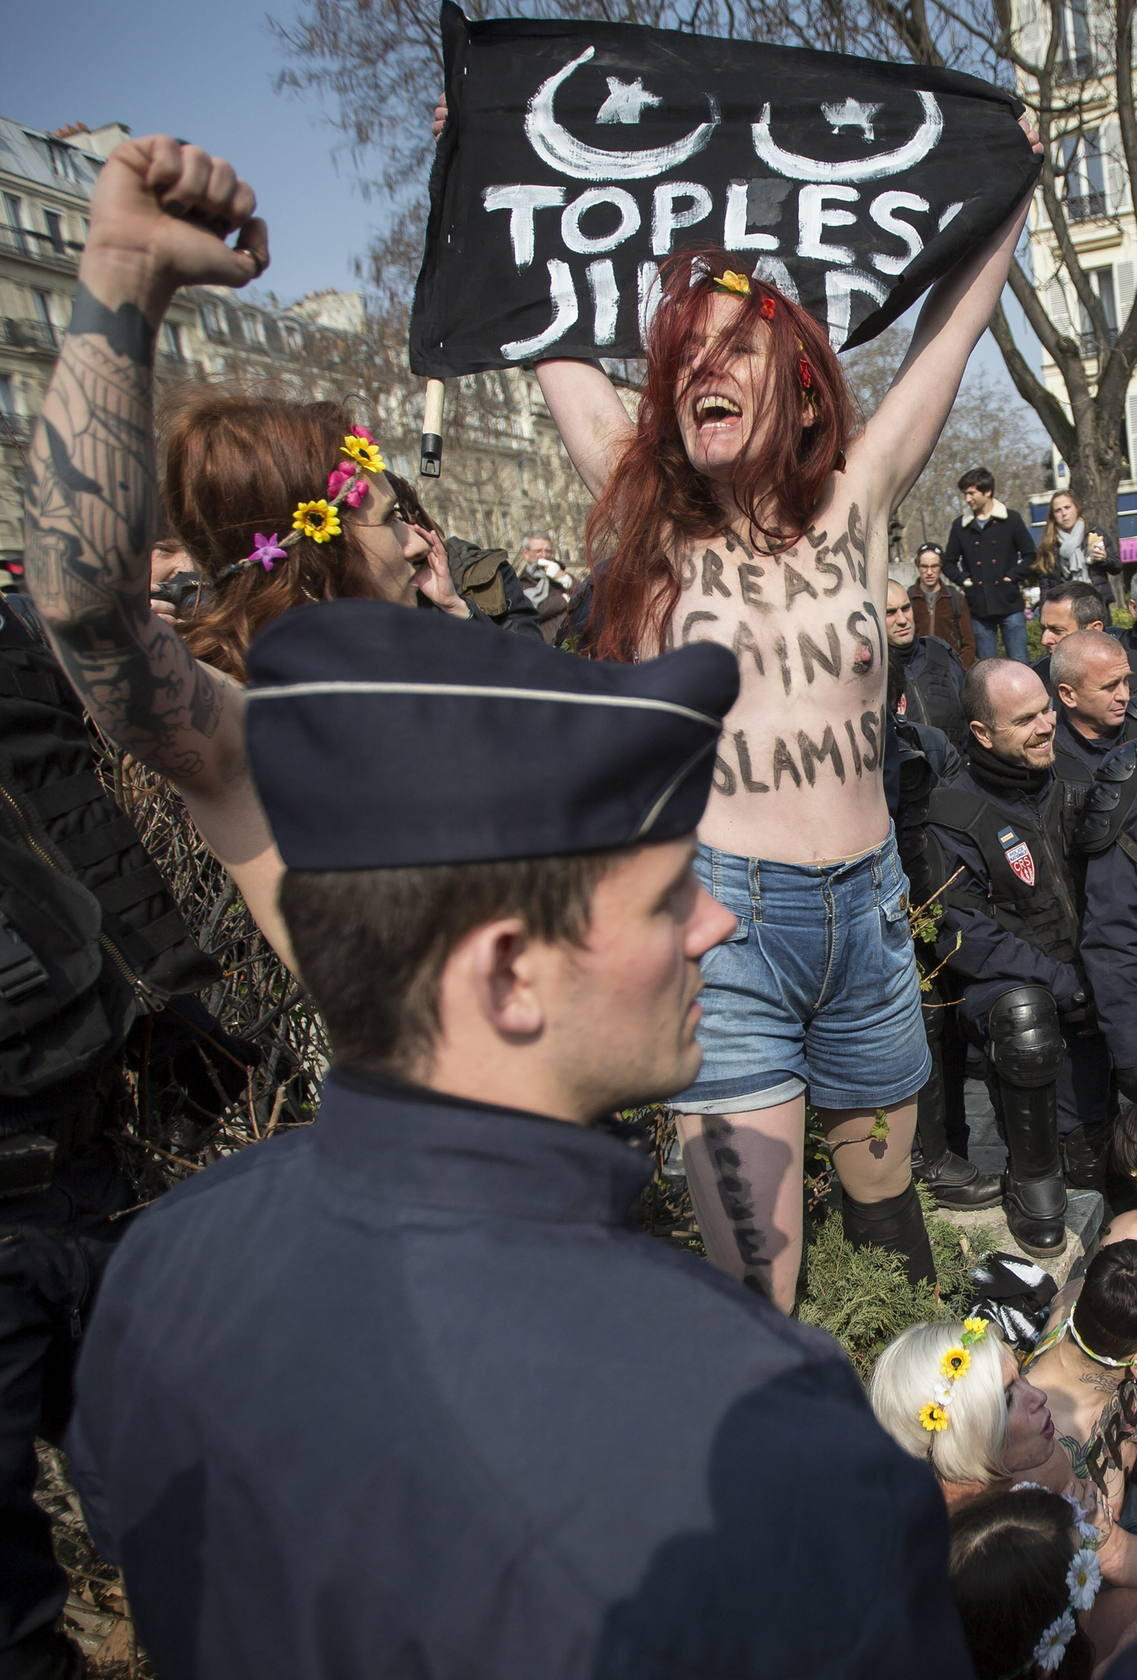 Femen celebra el &quot;D&iacute;a Internacional de la Yihad en topless&quot;